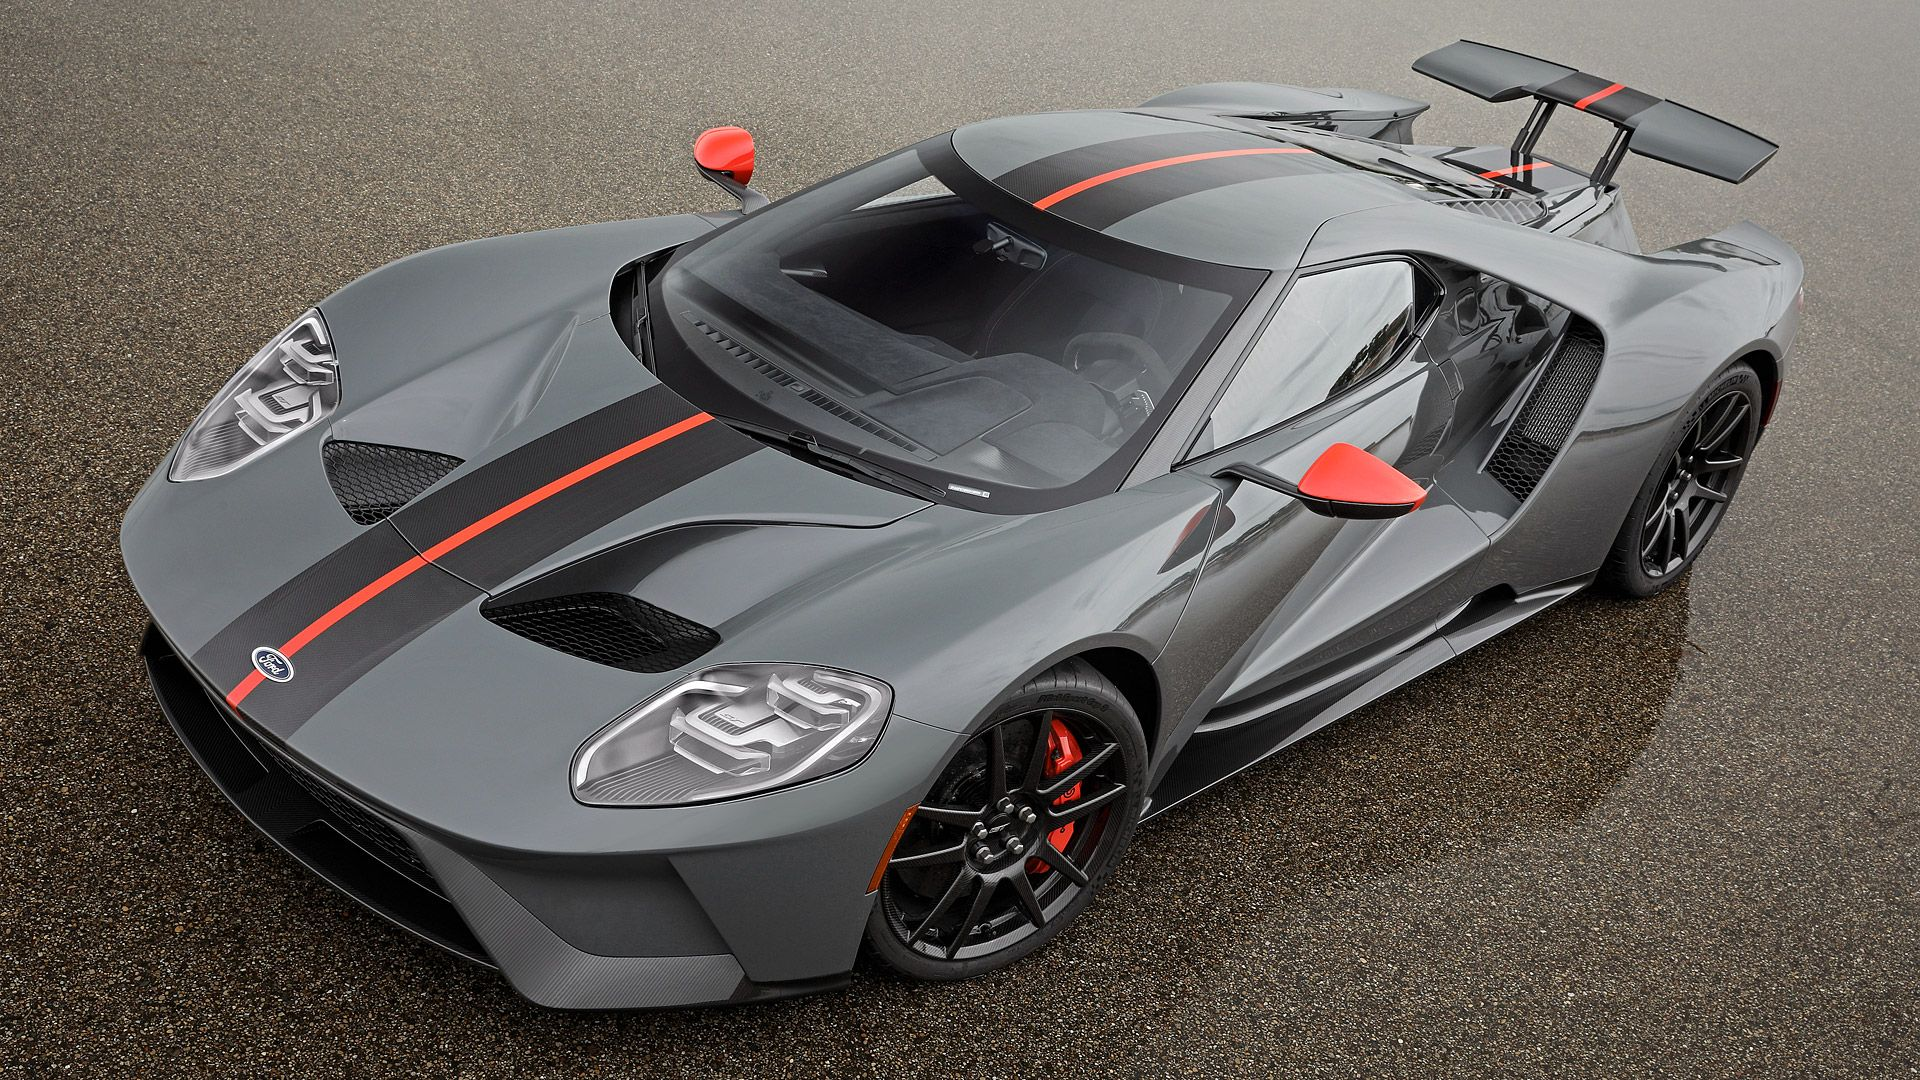 Ford Has Released The Lightest Version Of Their Gt Supercar Yet